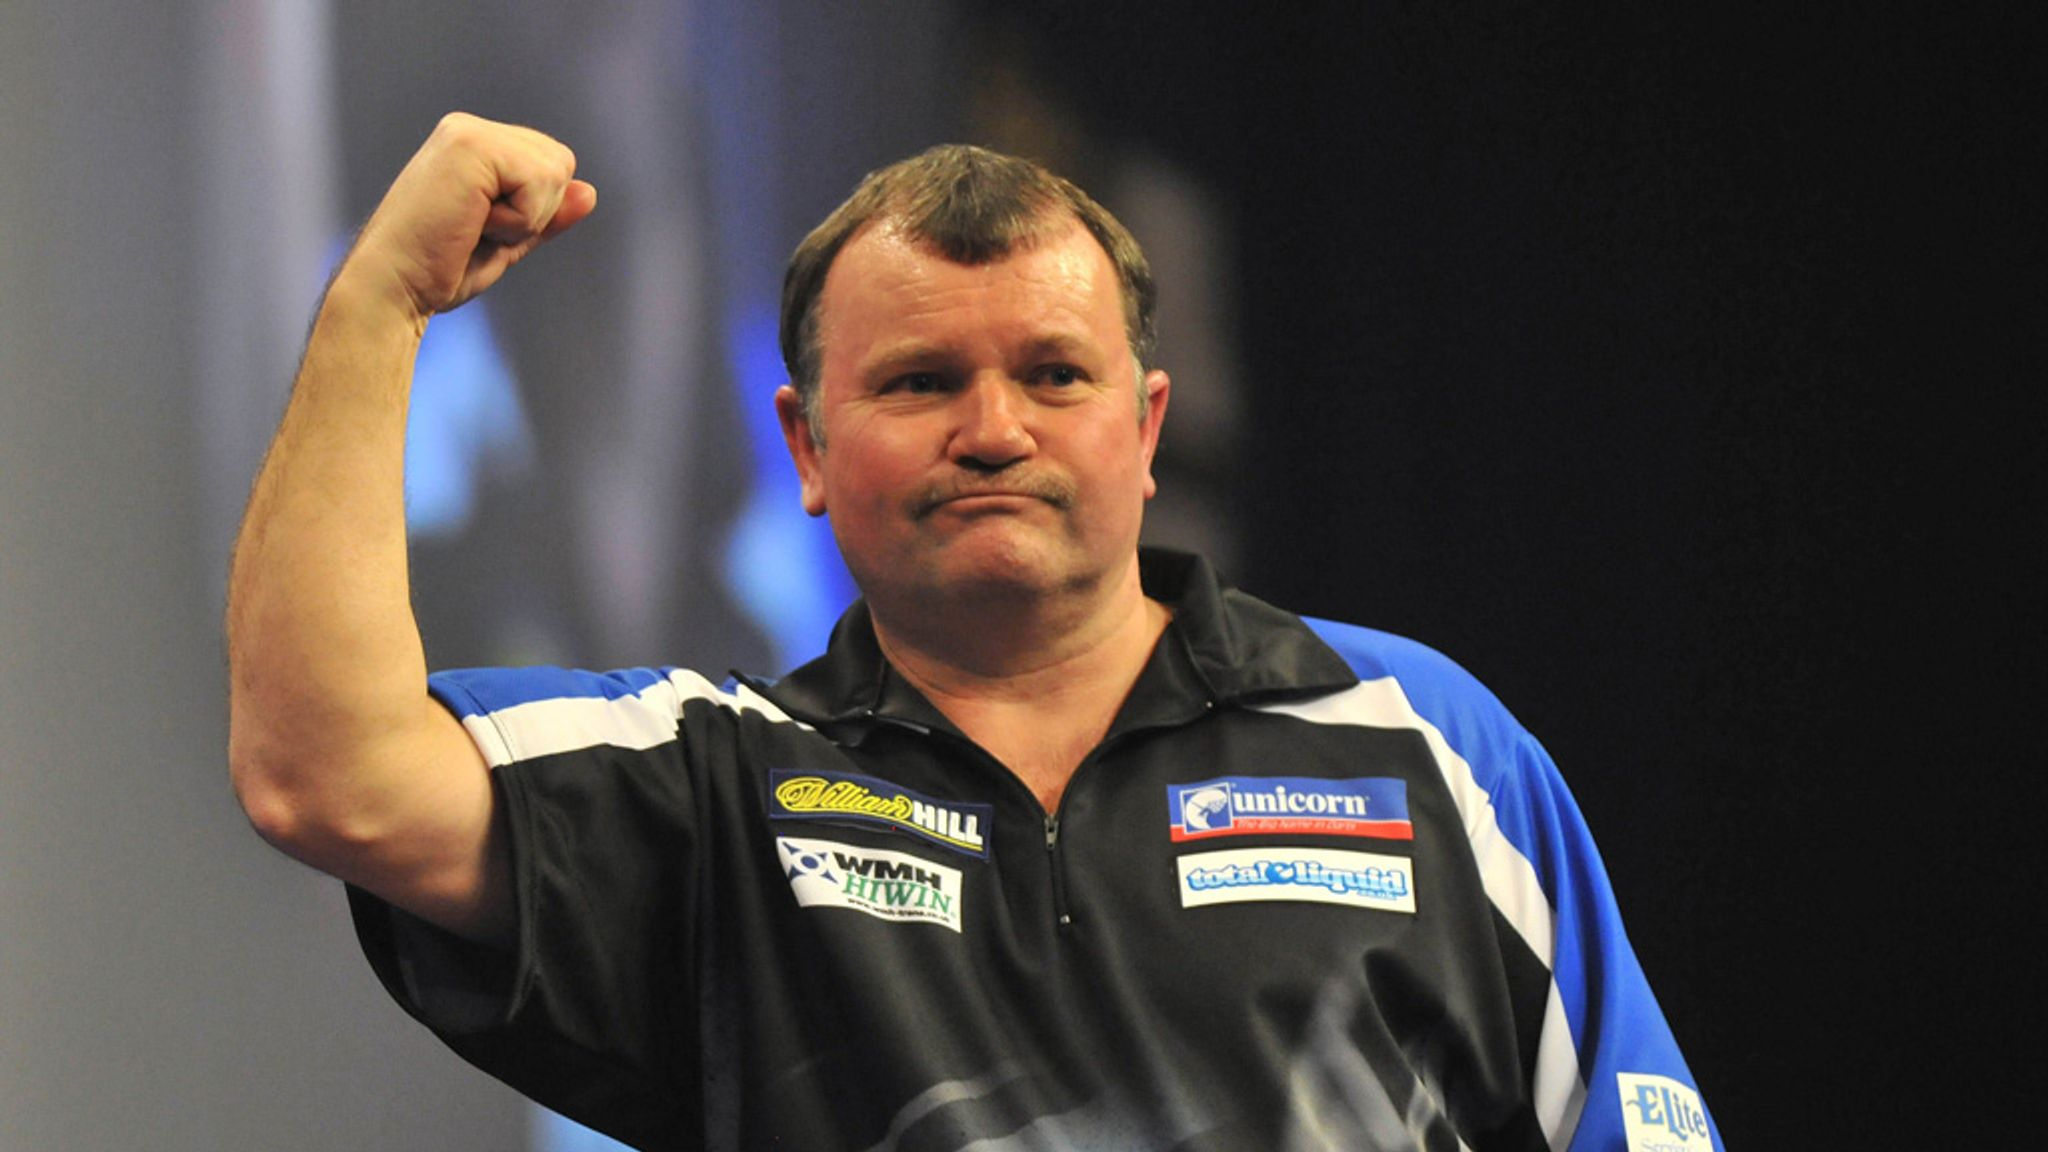 Online Darts Live League Phase 3 Week 1, Results and How to Watch